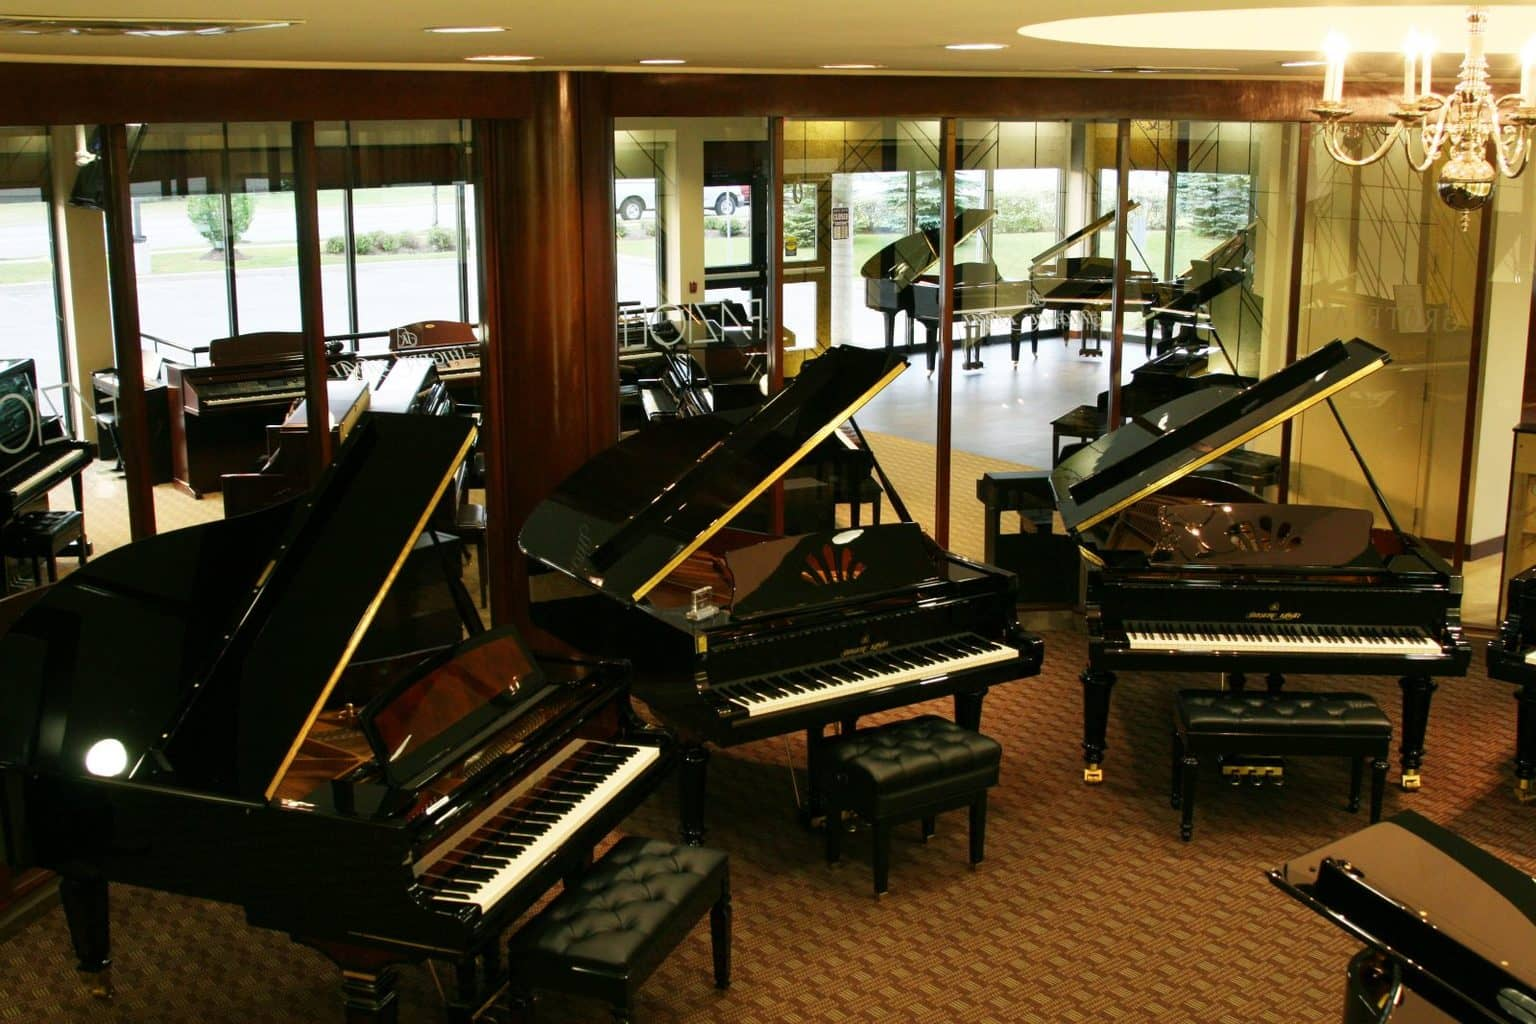 Kinds of Pianos